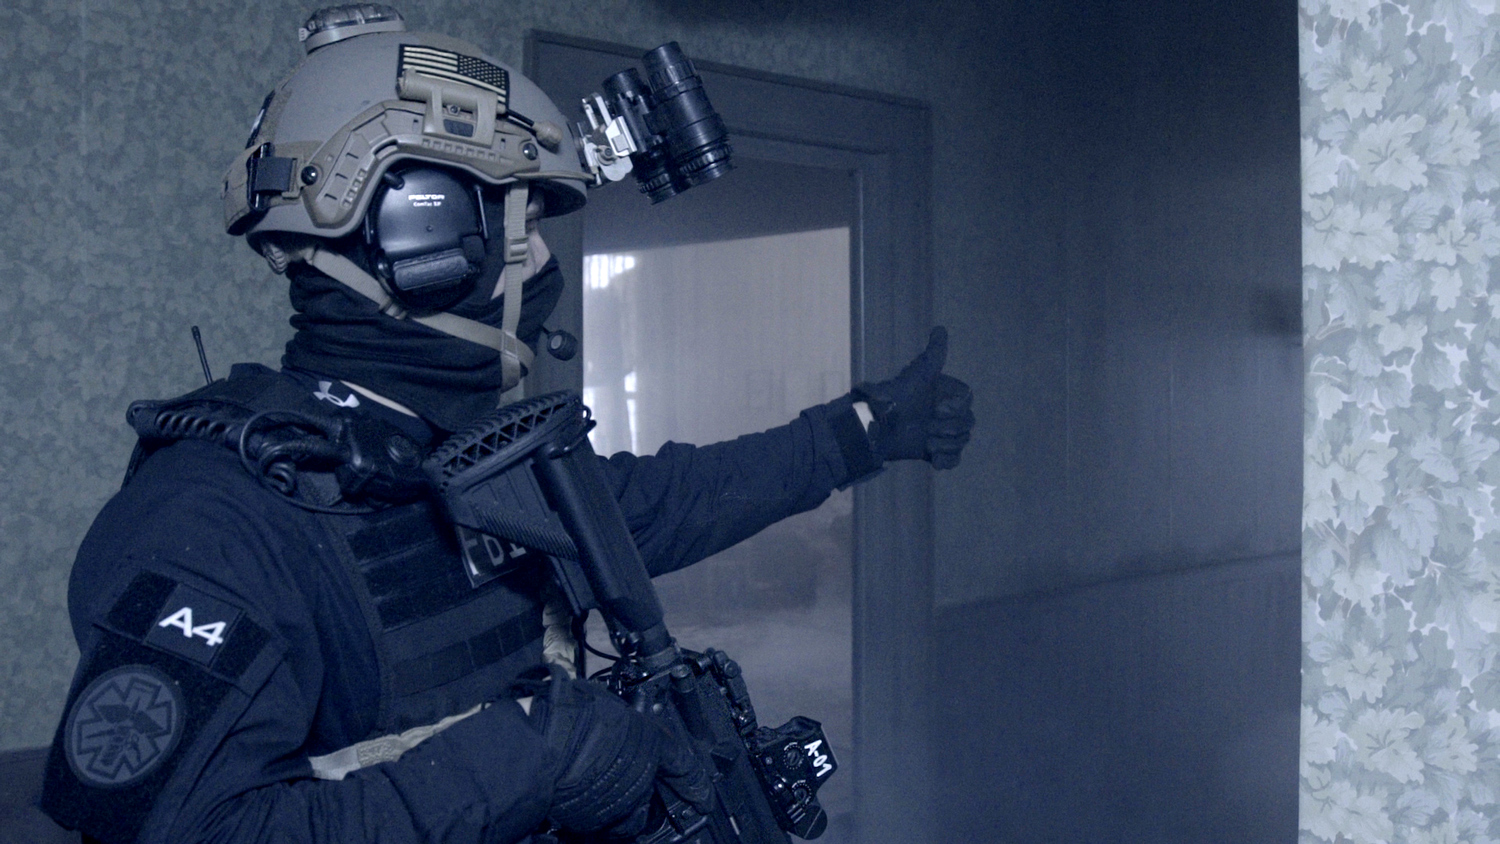 Martin Goeres, MG Action, Special Forces, FBI HRT, Room Clearing